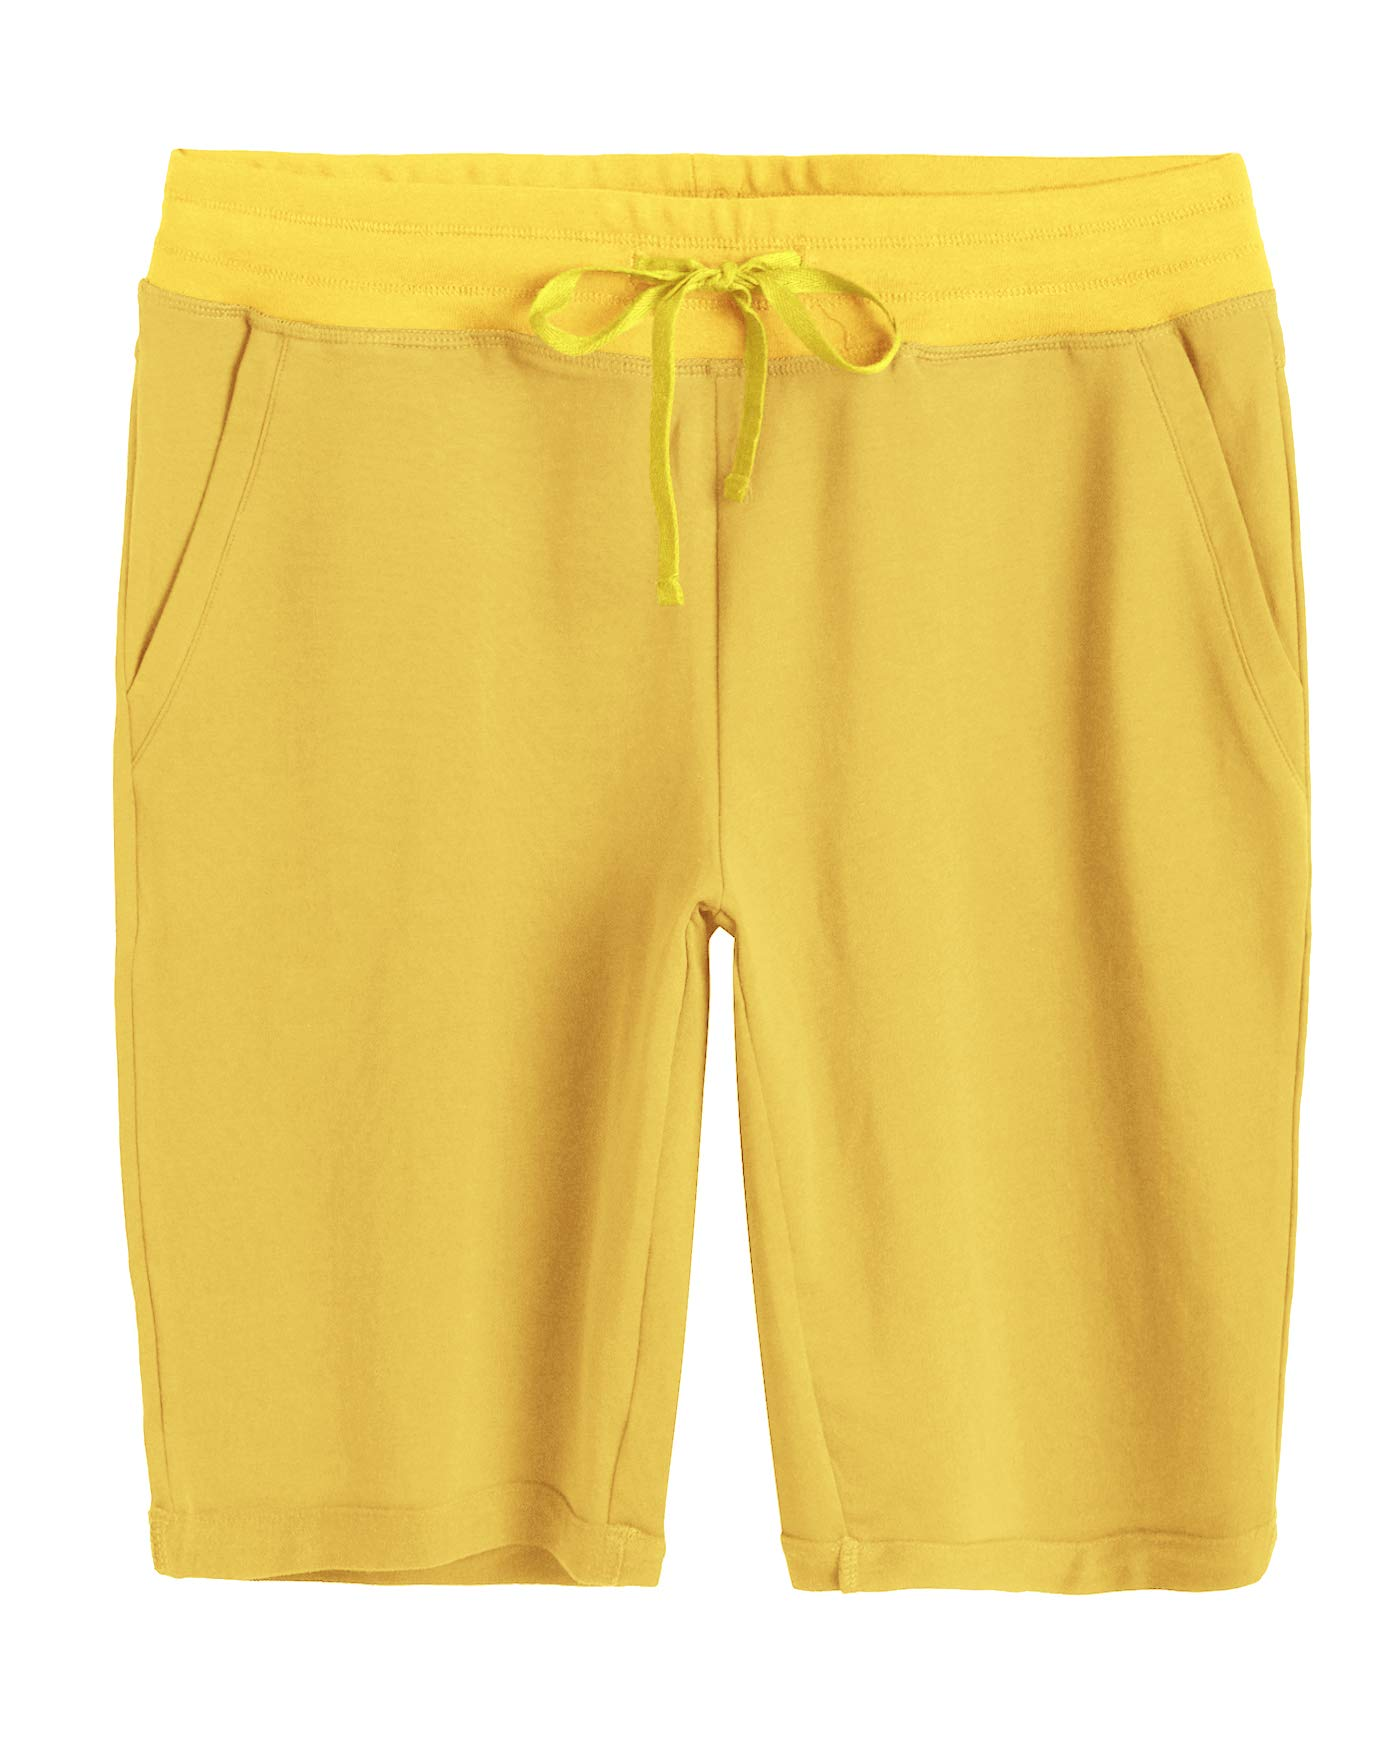 Weintee Women's Cotton Bermuda Shorts with Pockets M Mustard by Weintee